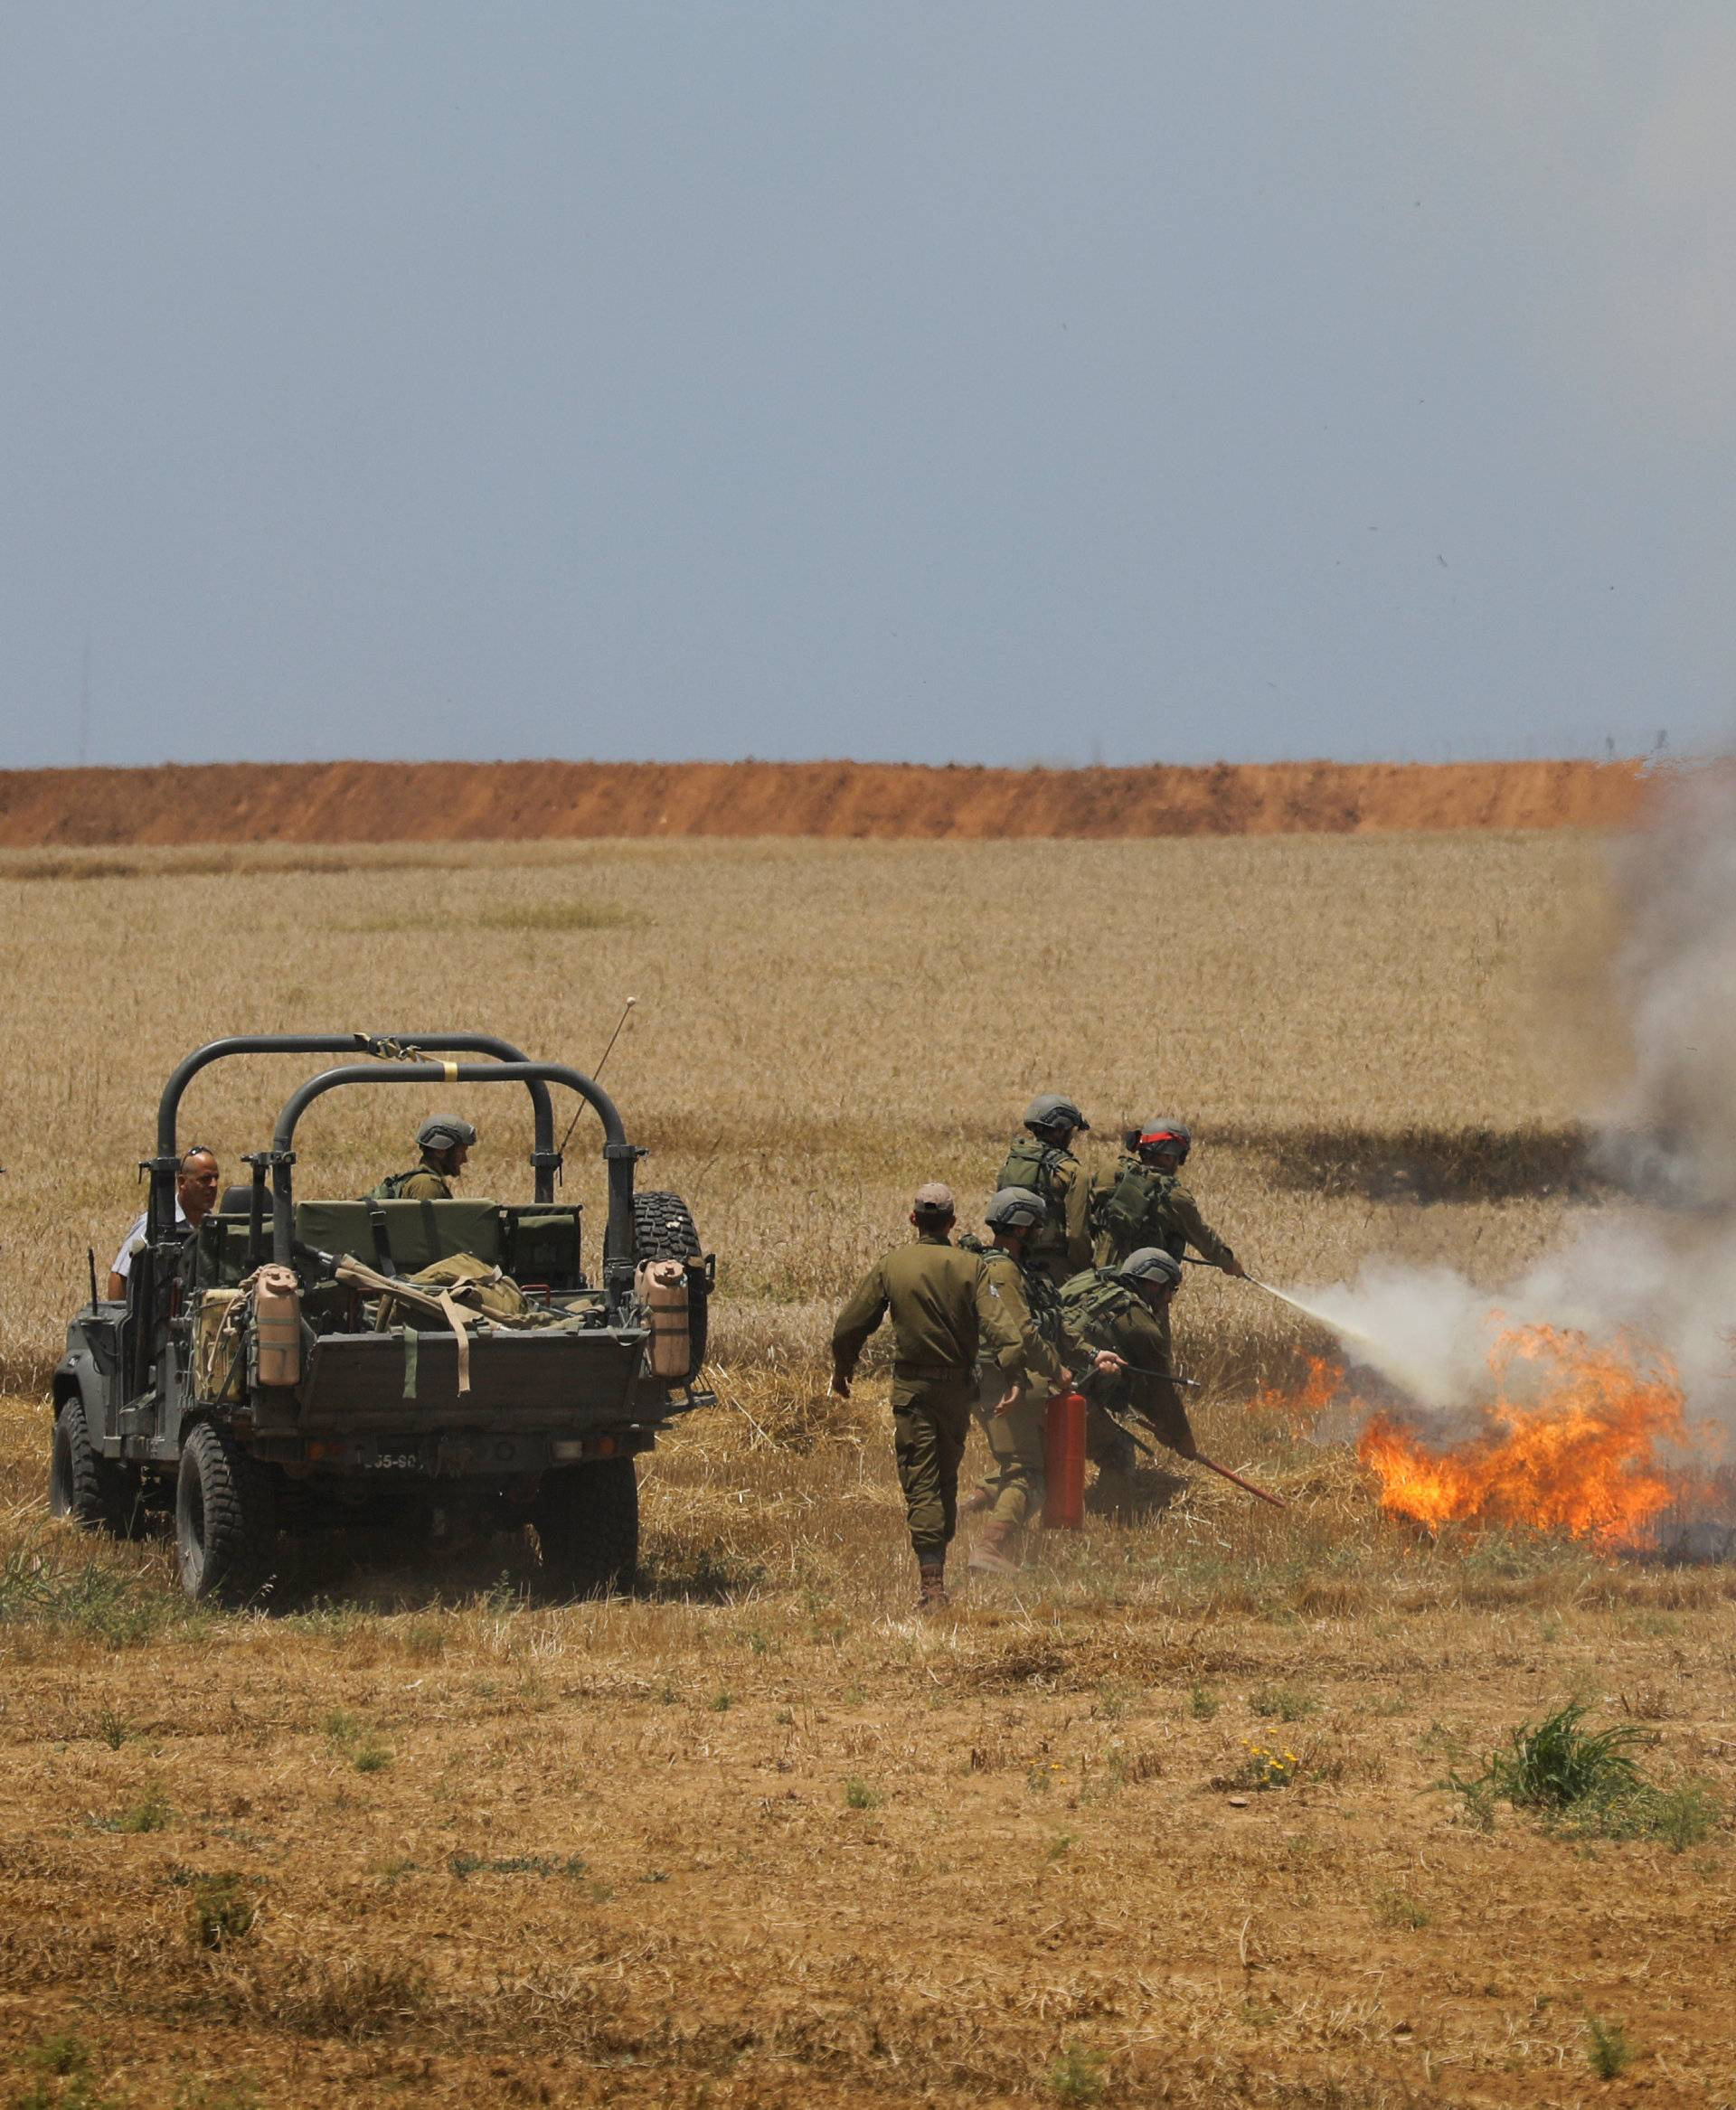 Israeli soldiers attempt to extinguish a fire in a field on the Israeli side of the border fence between Israel and Gaza near kibbutz Mefalsim